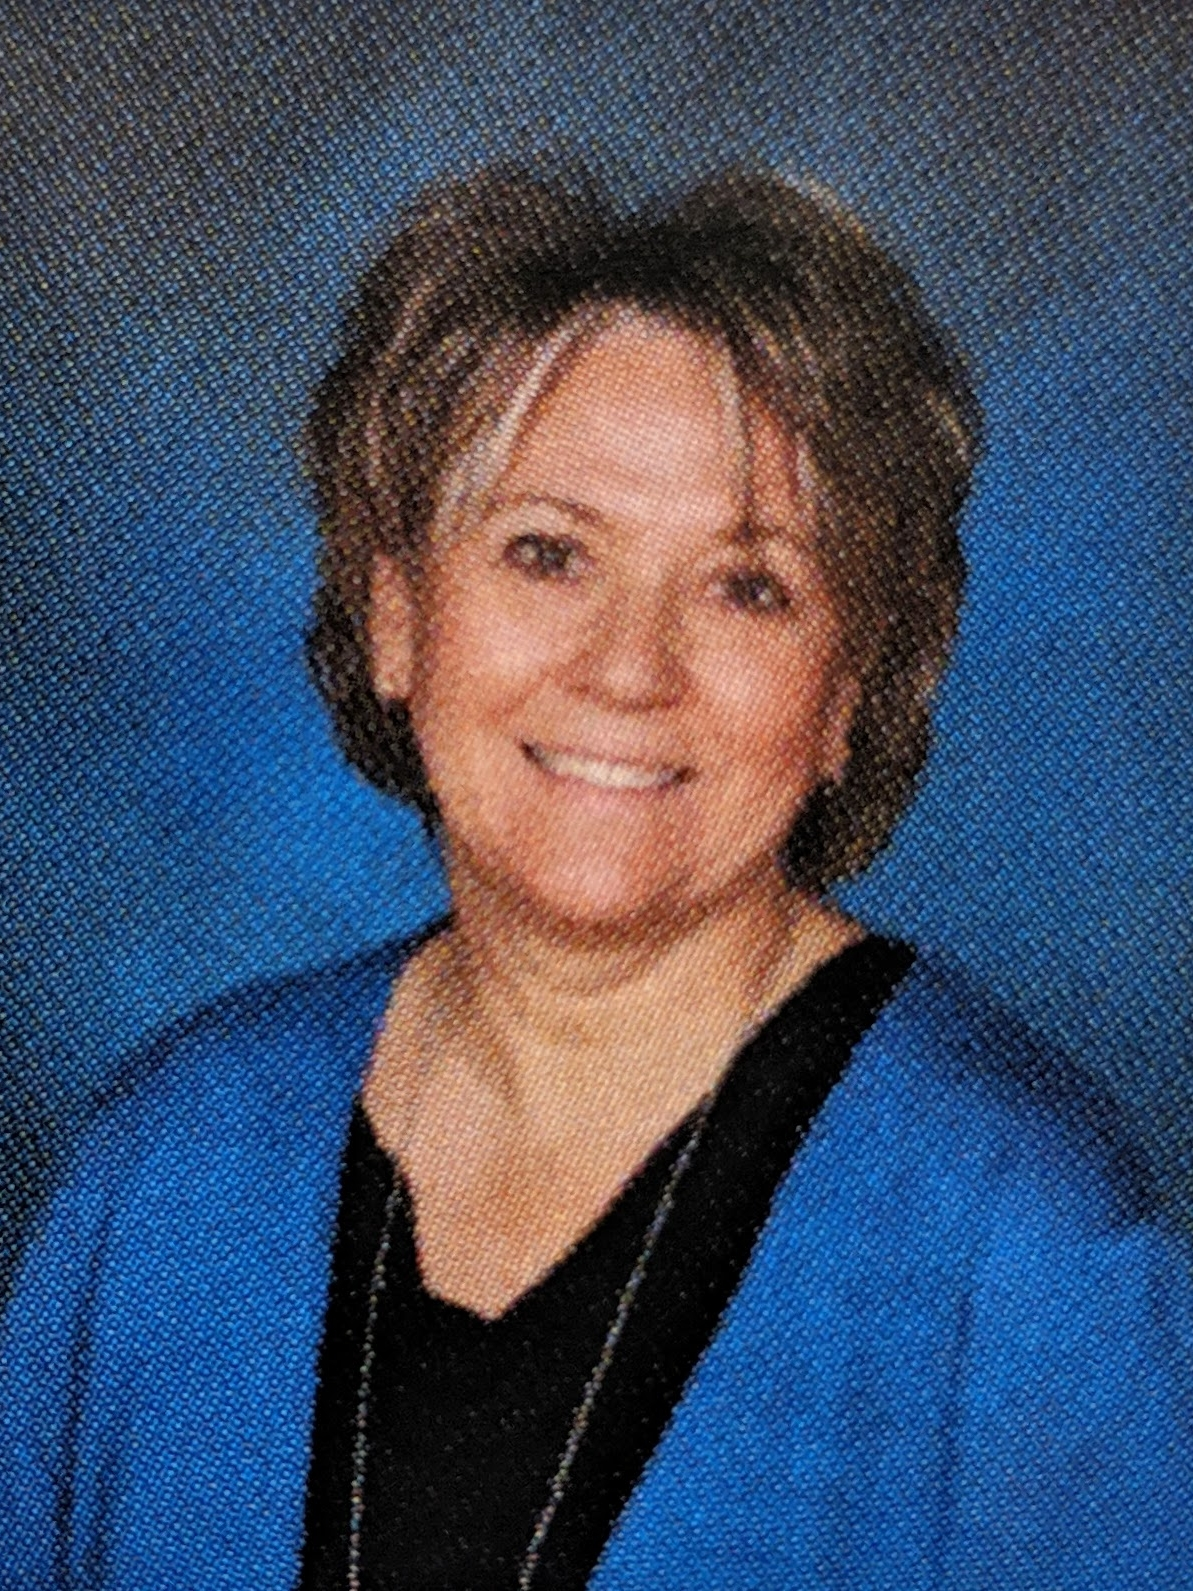 Cindy Arndorfer - This will be my 34th year teaching Kindergarten at Hettinger Public School. I received my Associates in Applied Science degree, with an Early Childhood Concentration, from the University of Minnesota-Crookston in 1982. In 1984, I graduated from Mayville State College with an Elementary Education major and Early Childhood minor as well as my Kindergarten Endorsement. I look forward to another great year getting to know all my Kindergarten Kiddos & their families.